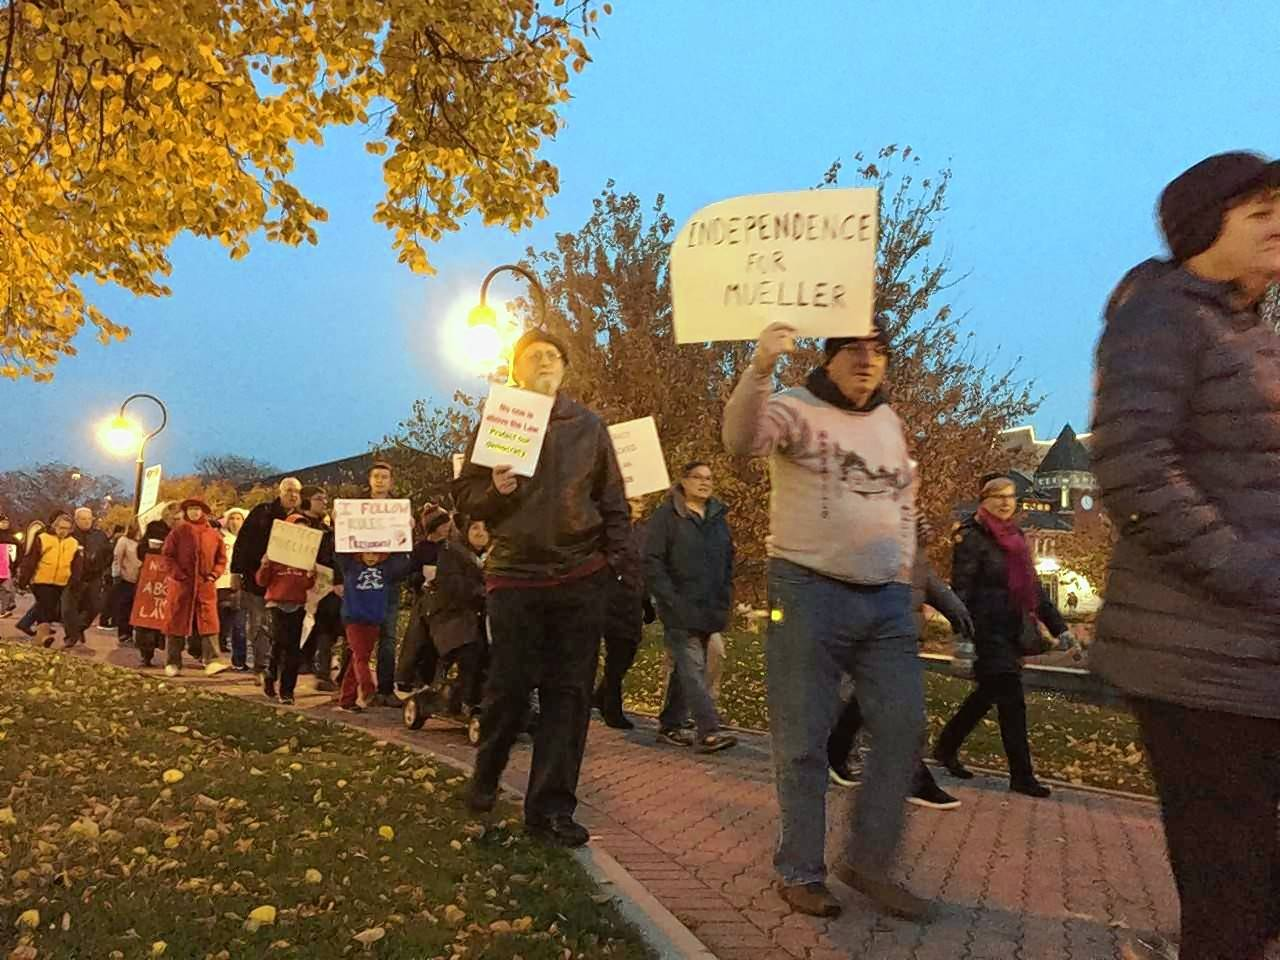 Protesters march along the Riverwalk on Thursday afternoon in downtown Naperville, showing their anger over the forced resignation of former U.S. Attorney General Jeff Sessions and expressing their fears about the consequences of Sessions' ouster for Special Counsel Robert Mueller's investigation into Russian election meddling.